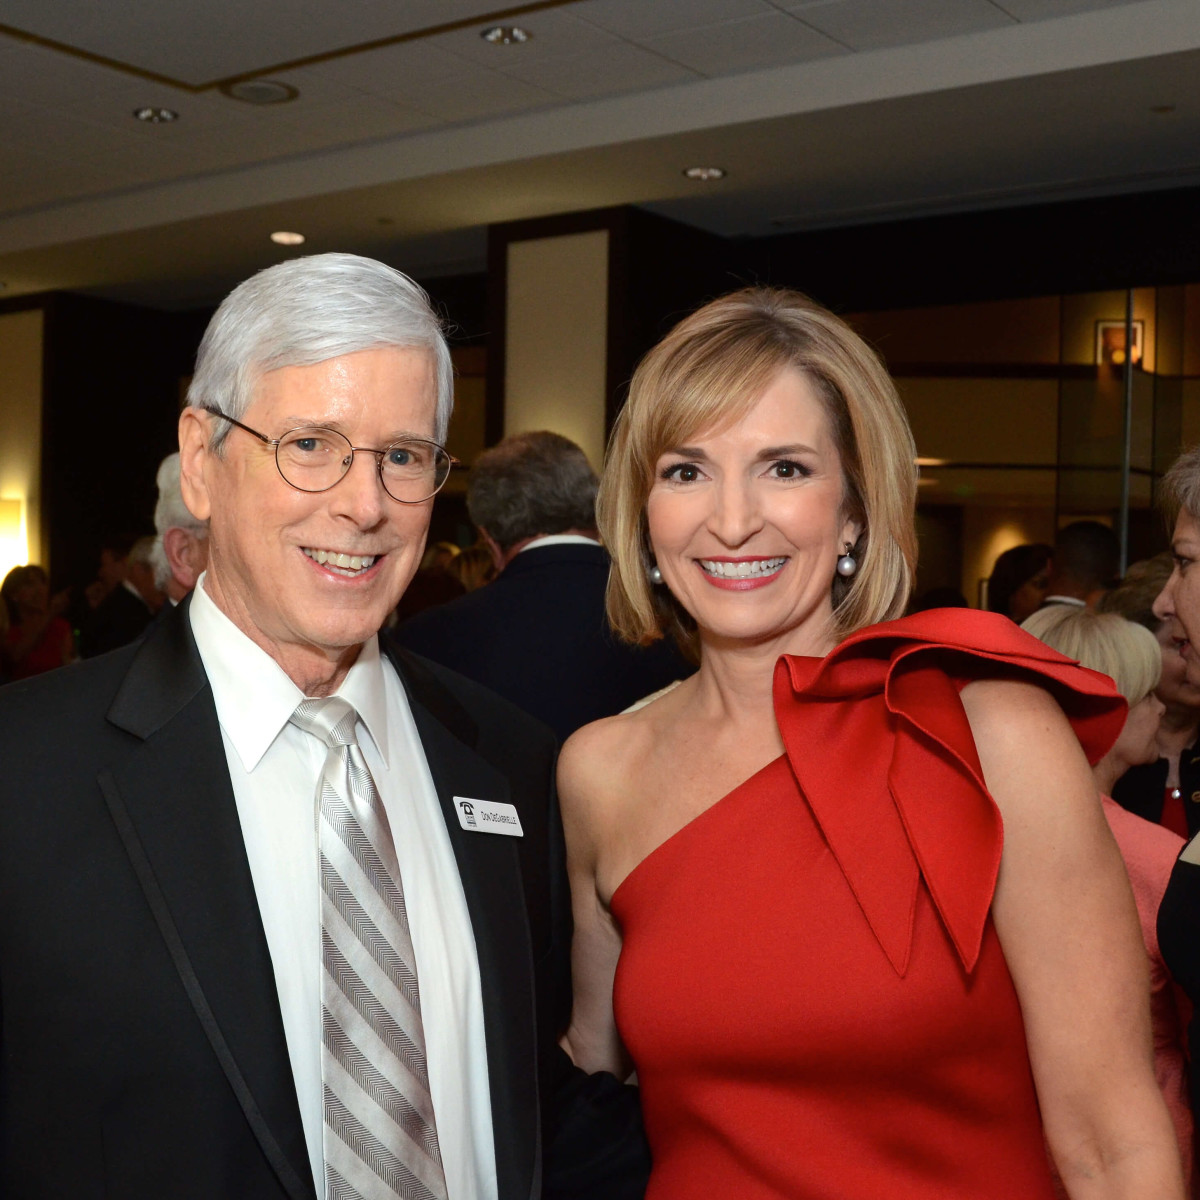 Houston, Crime Stoppers of Houston gala, Nov. 2016, Don DeGabrielle, Devon Anderson